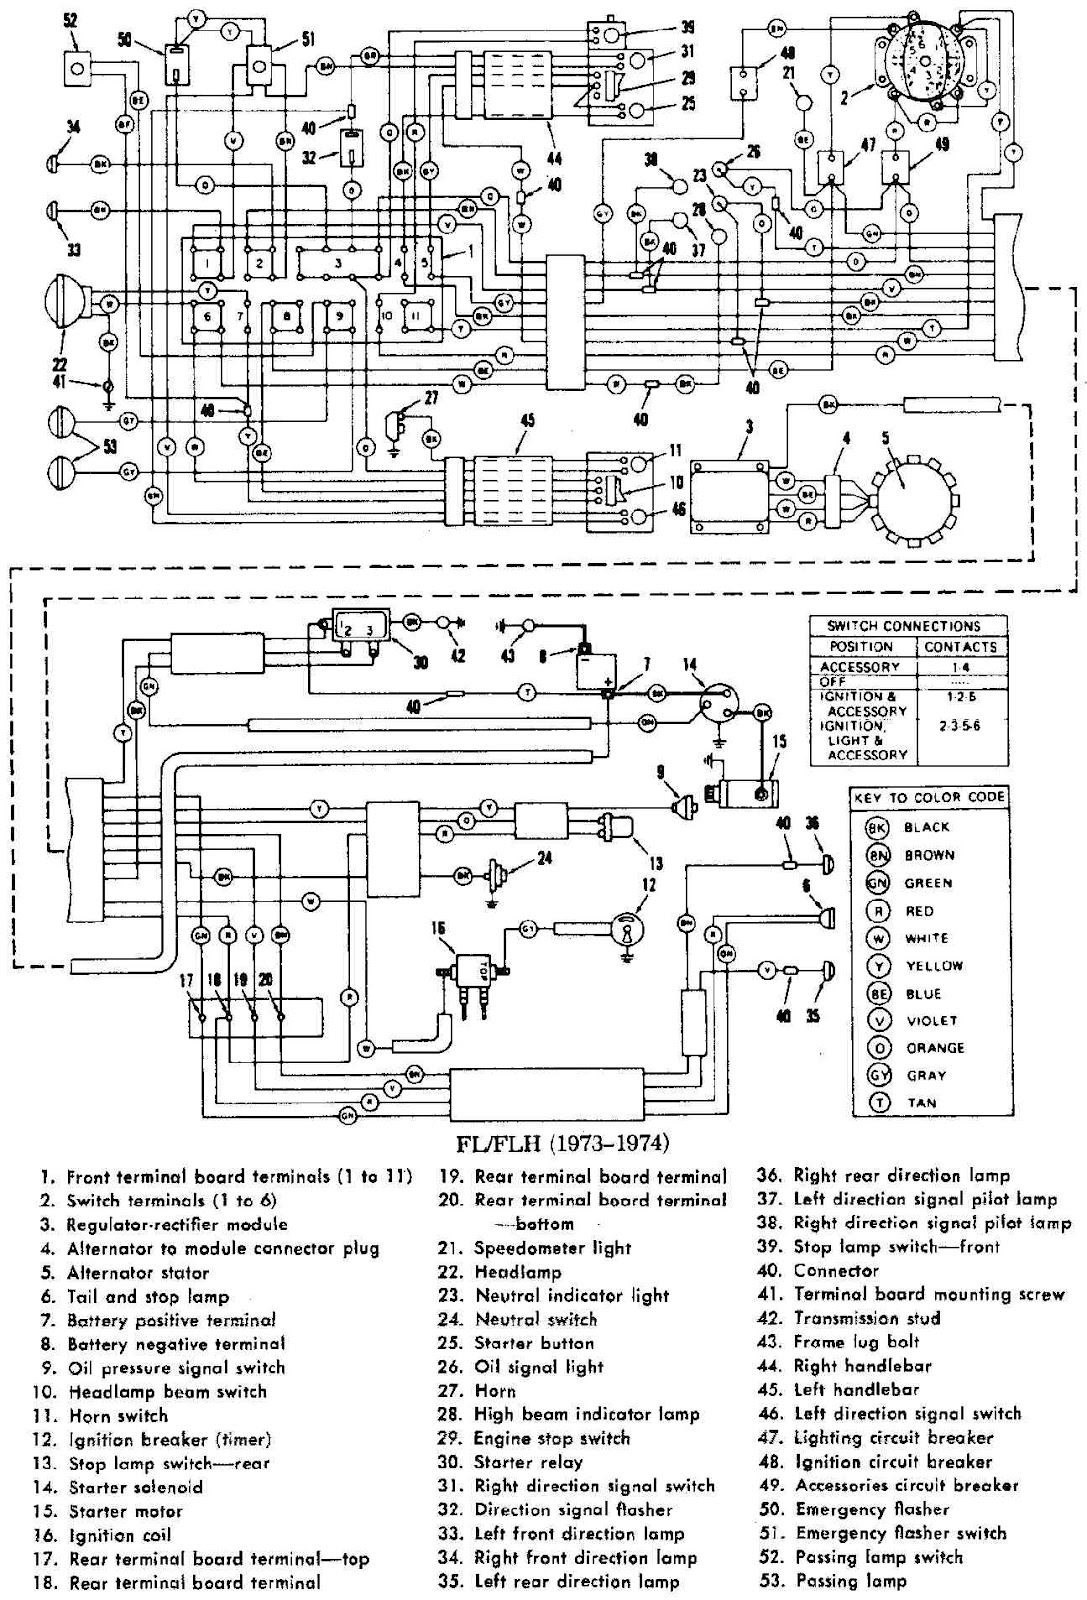 Amx Parting Out further 1970 Oldsmobile 442 Wiring Harness also Amccar Wiring Diagram besides File 1973 AMC Javelin AMX black 401 um Engn besides Harley Davidson Fl Flh 1973 74. on amc amx wiring diagram